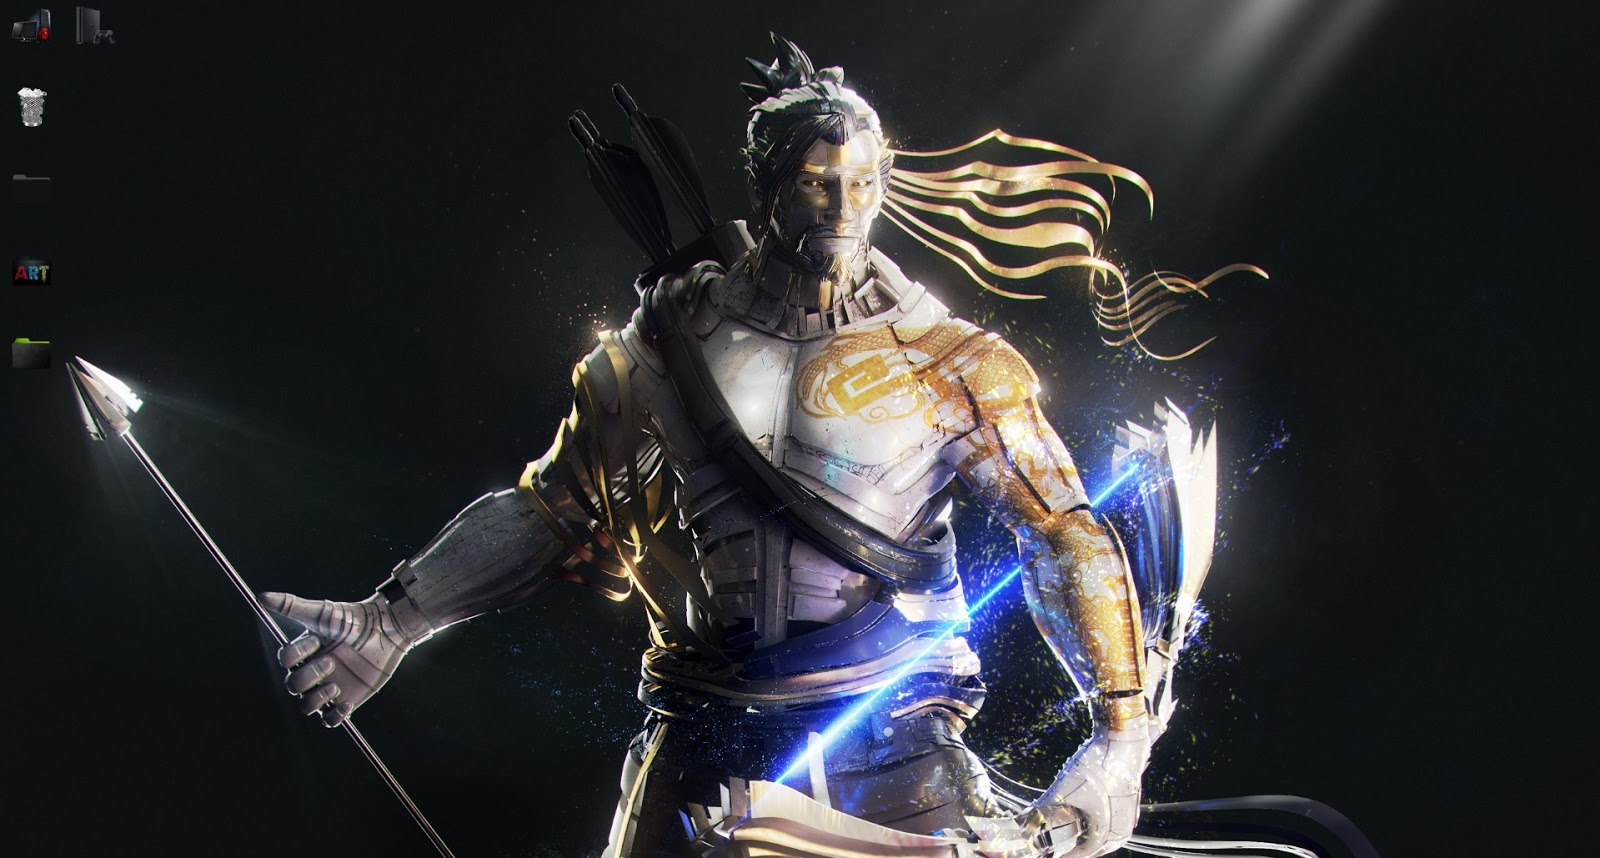 Download our free software and turn videos into your desktop wallpaper! wallpaper engine Overwatch Hanzo 4k live wallpaper free ...